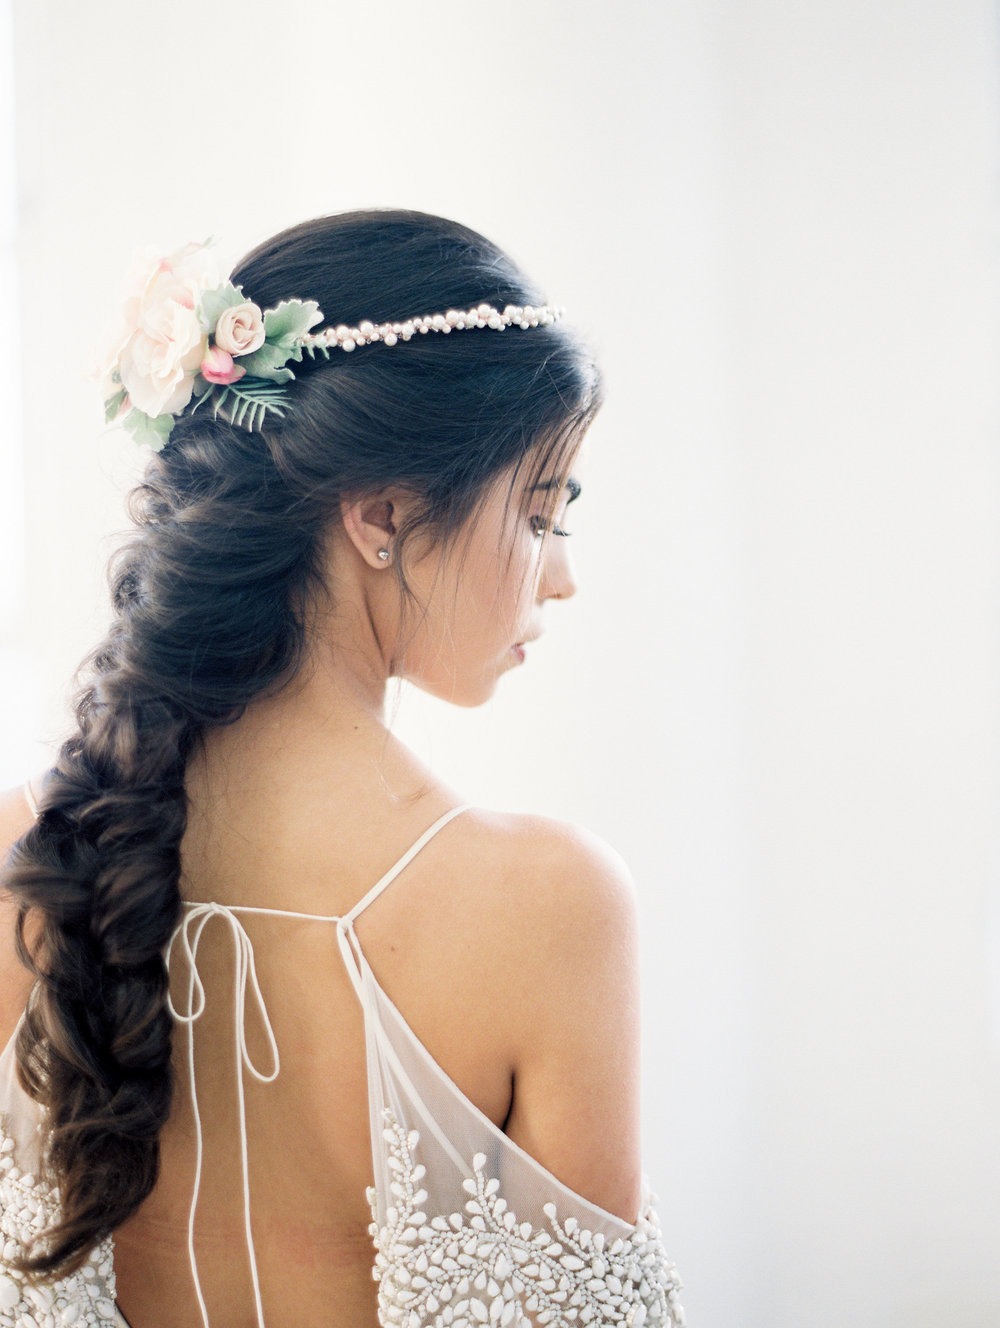 flower-crown-braided-hairstyle-boho-bride